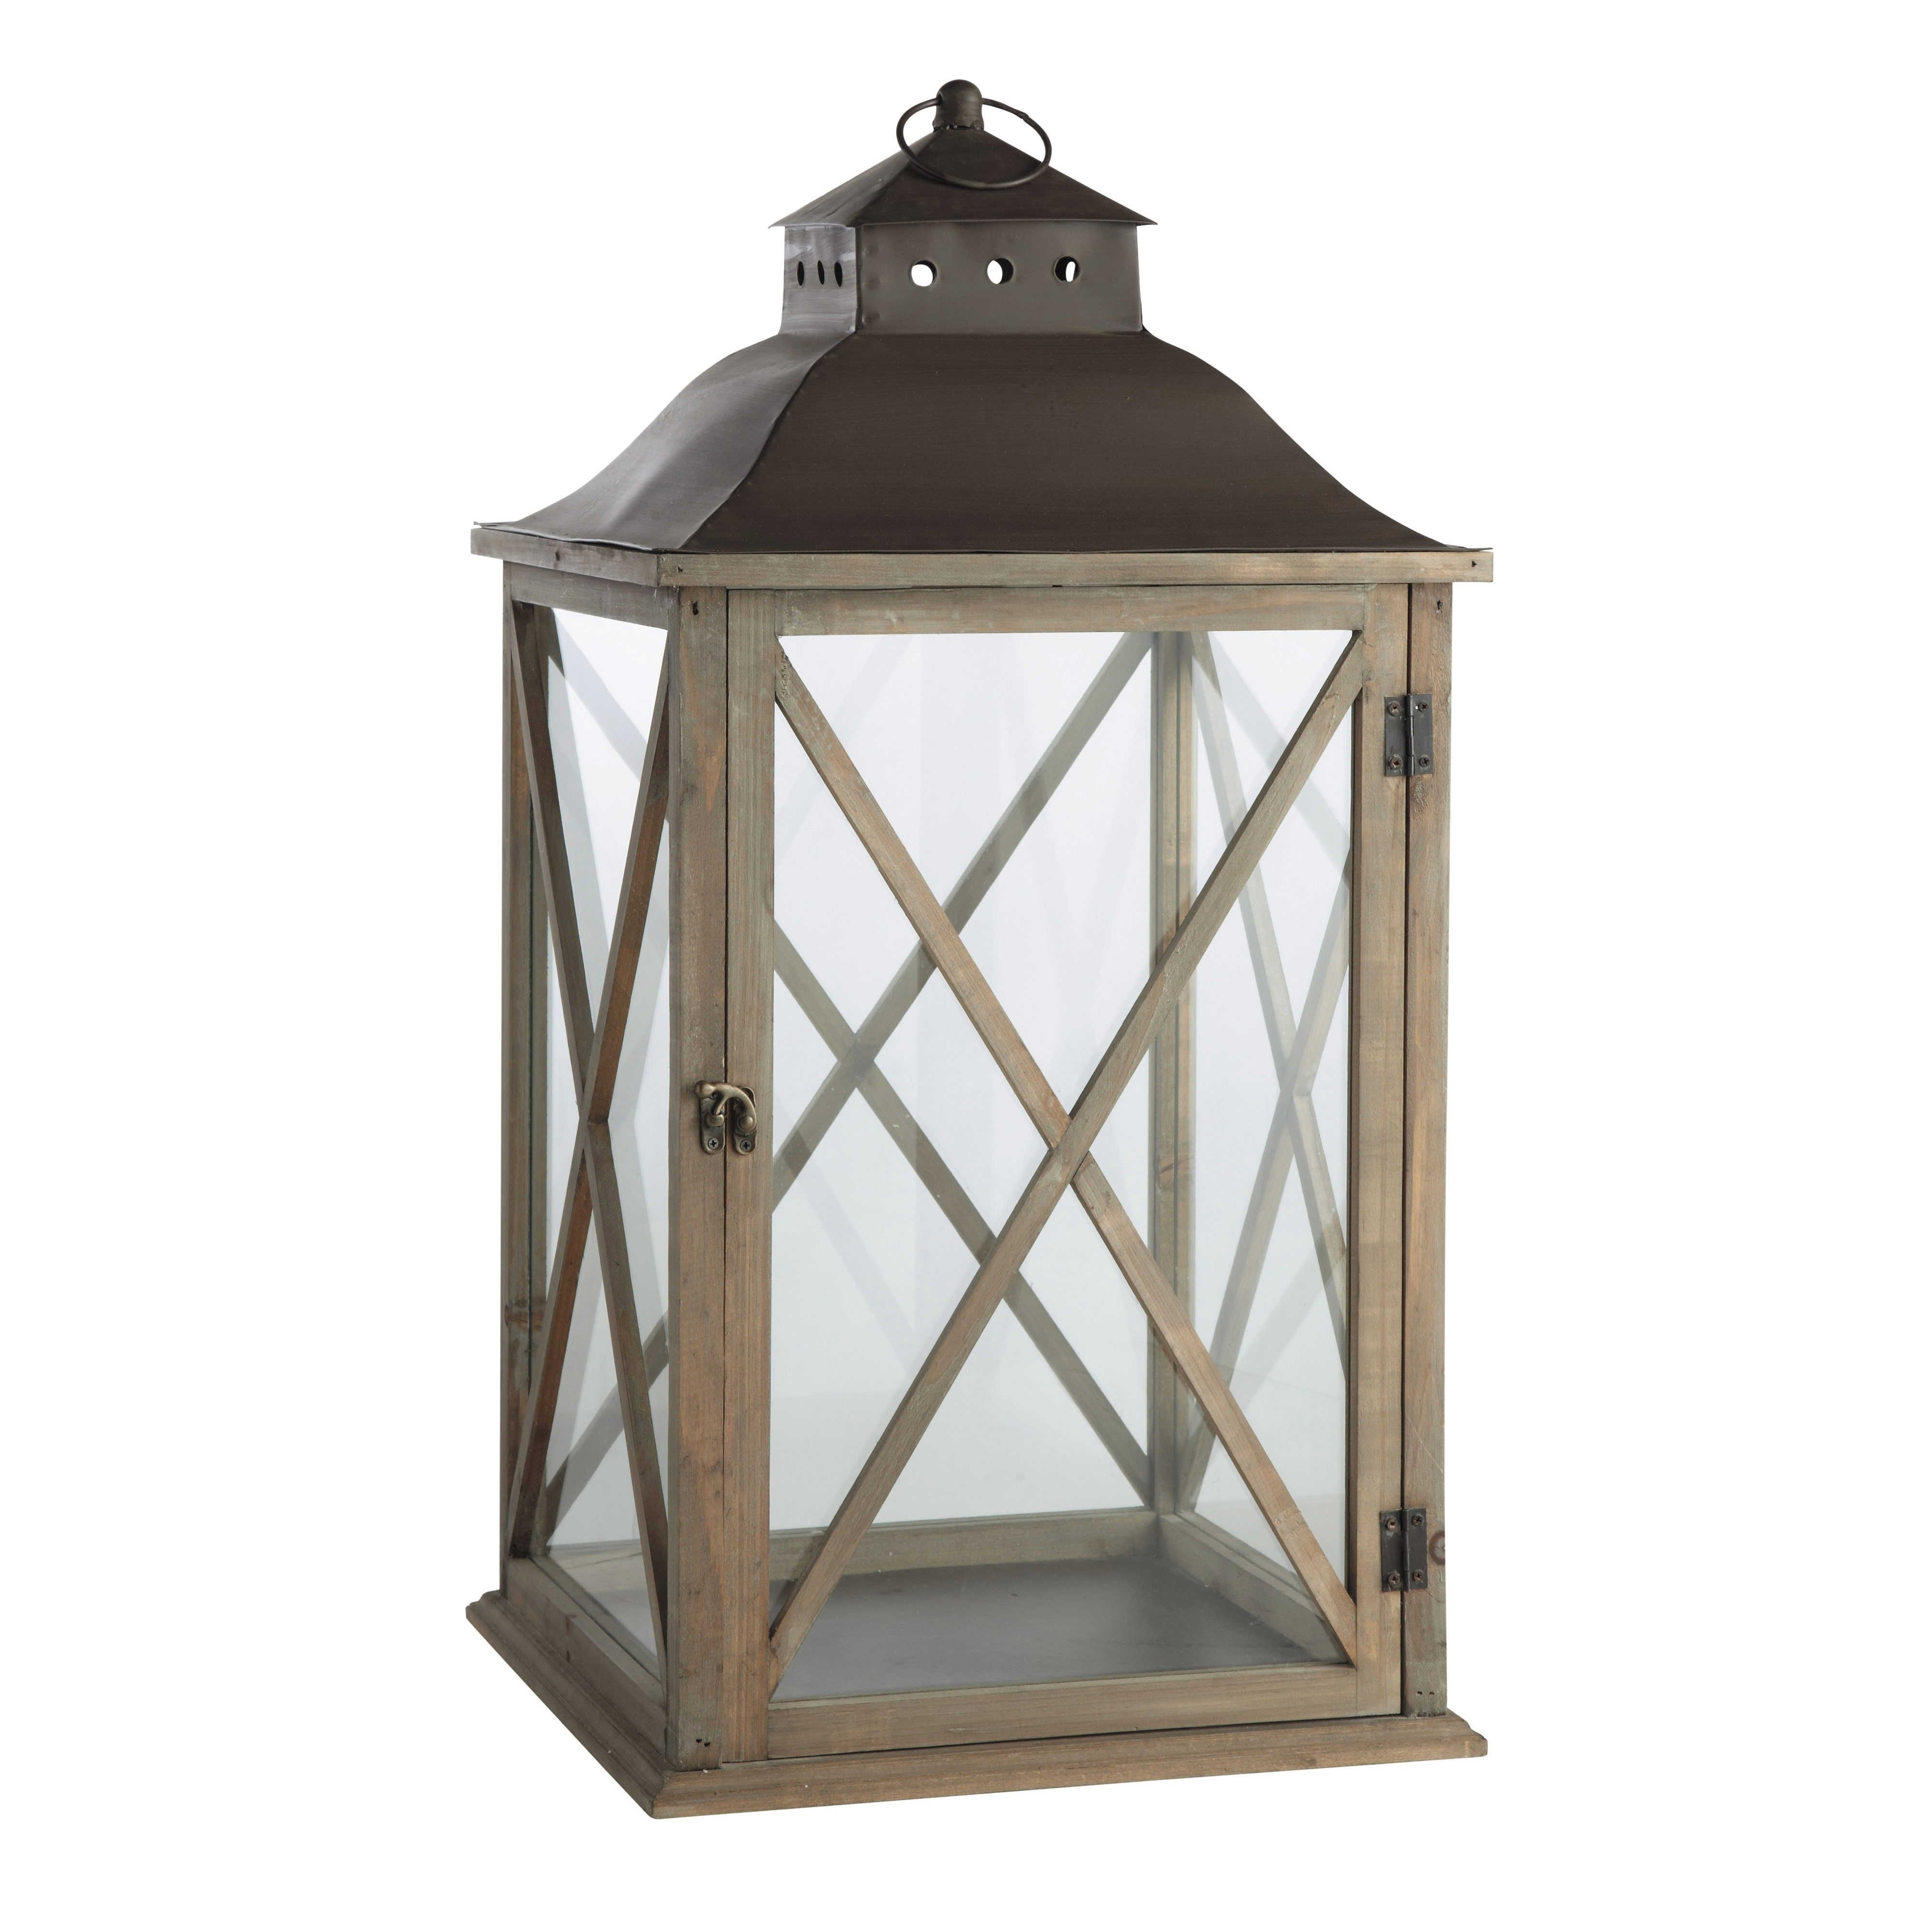 Garden Lanterns, Wood Gardens And Regarding Outdoor Grey Lanterns (View 7 of 20)